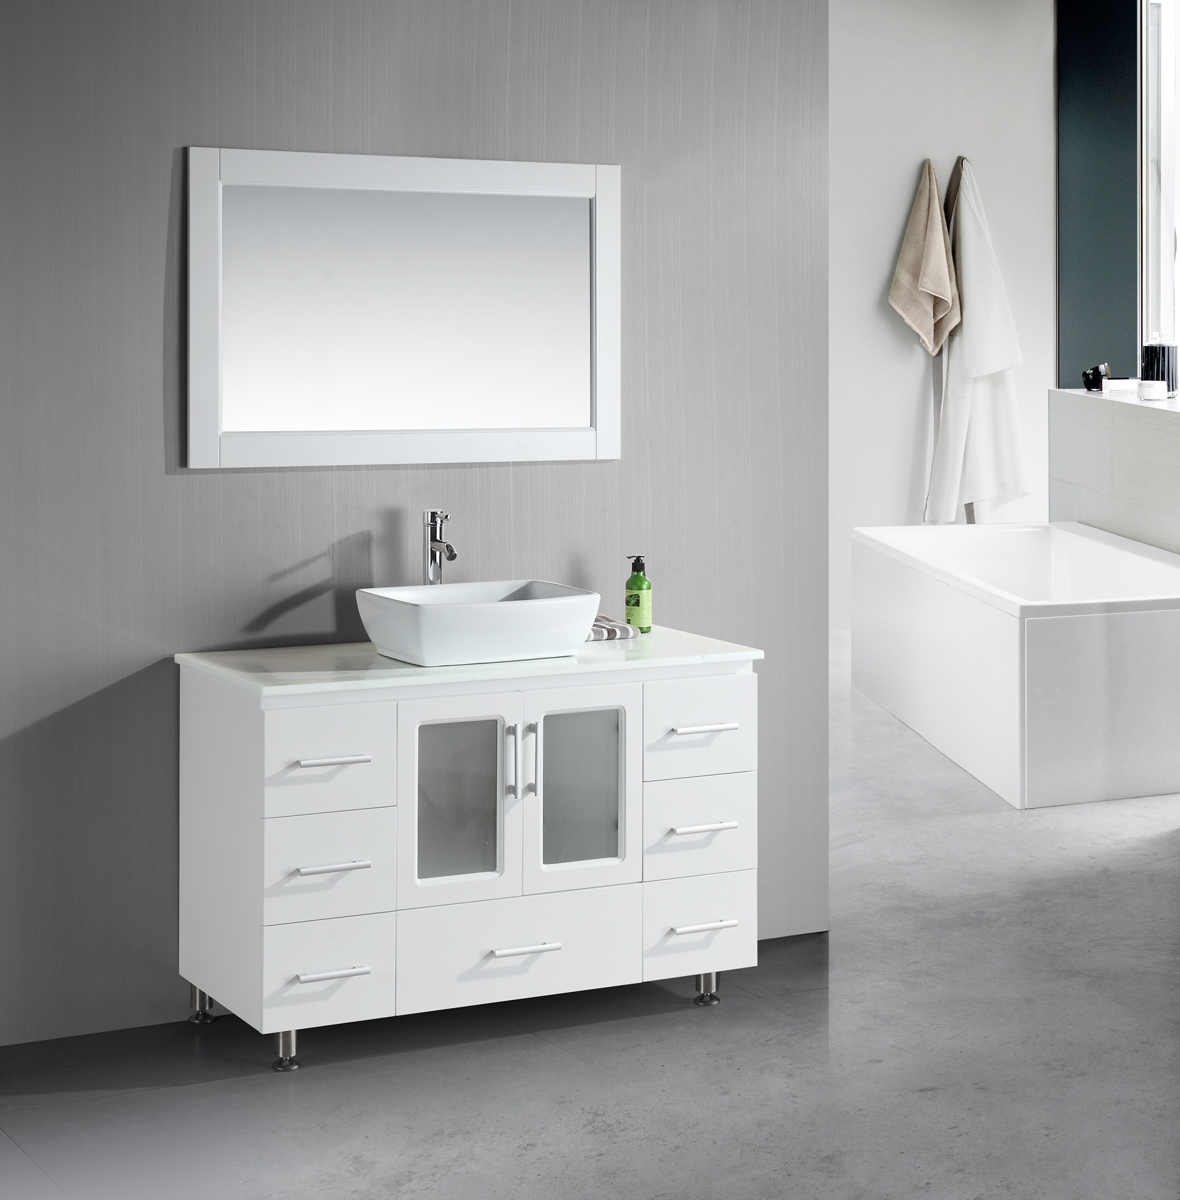 Stanton 48 Inch White Bathroom Vanity Porcelain Vessel Sink In Contemporary White Mirror (Image 12 of 15)